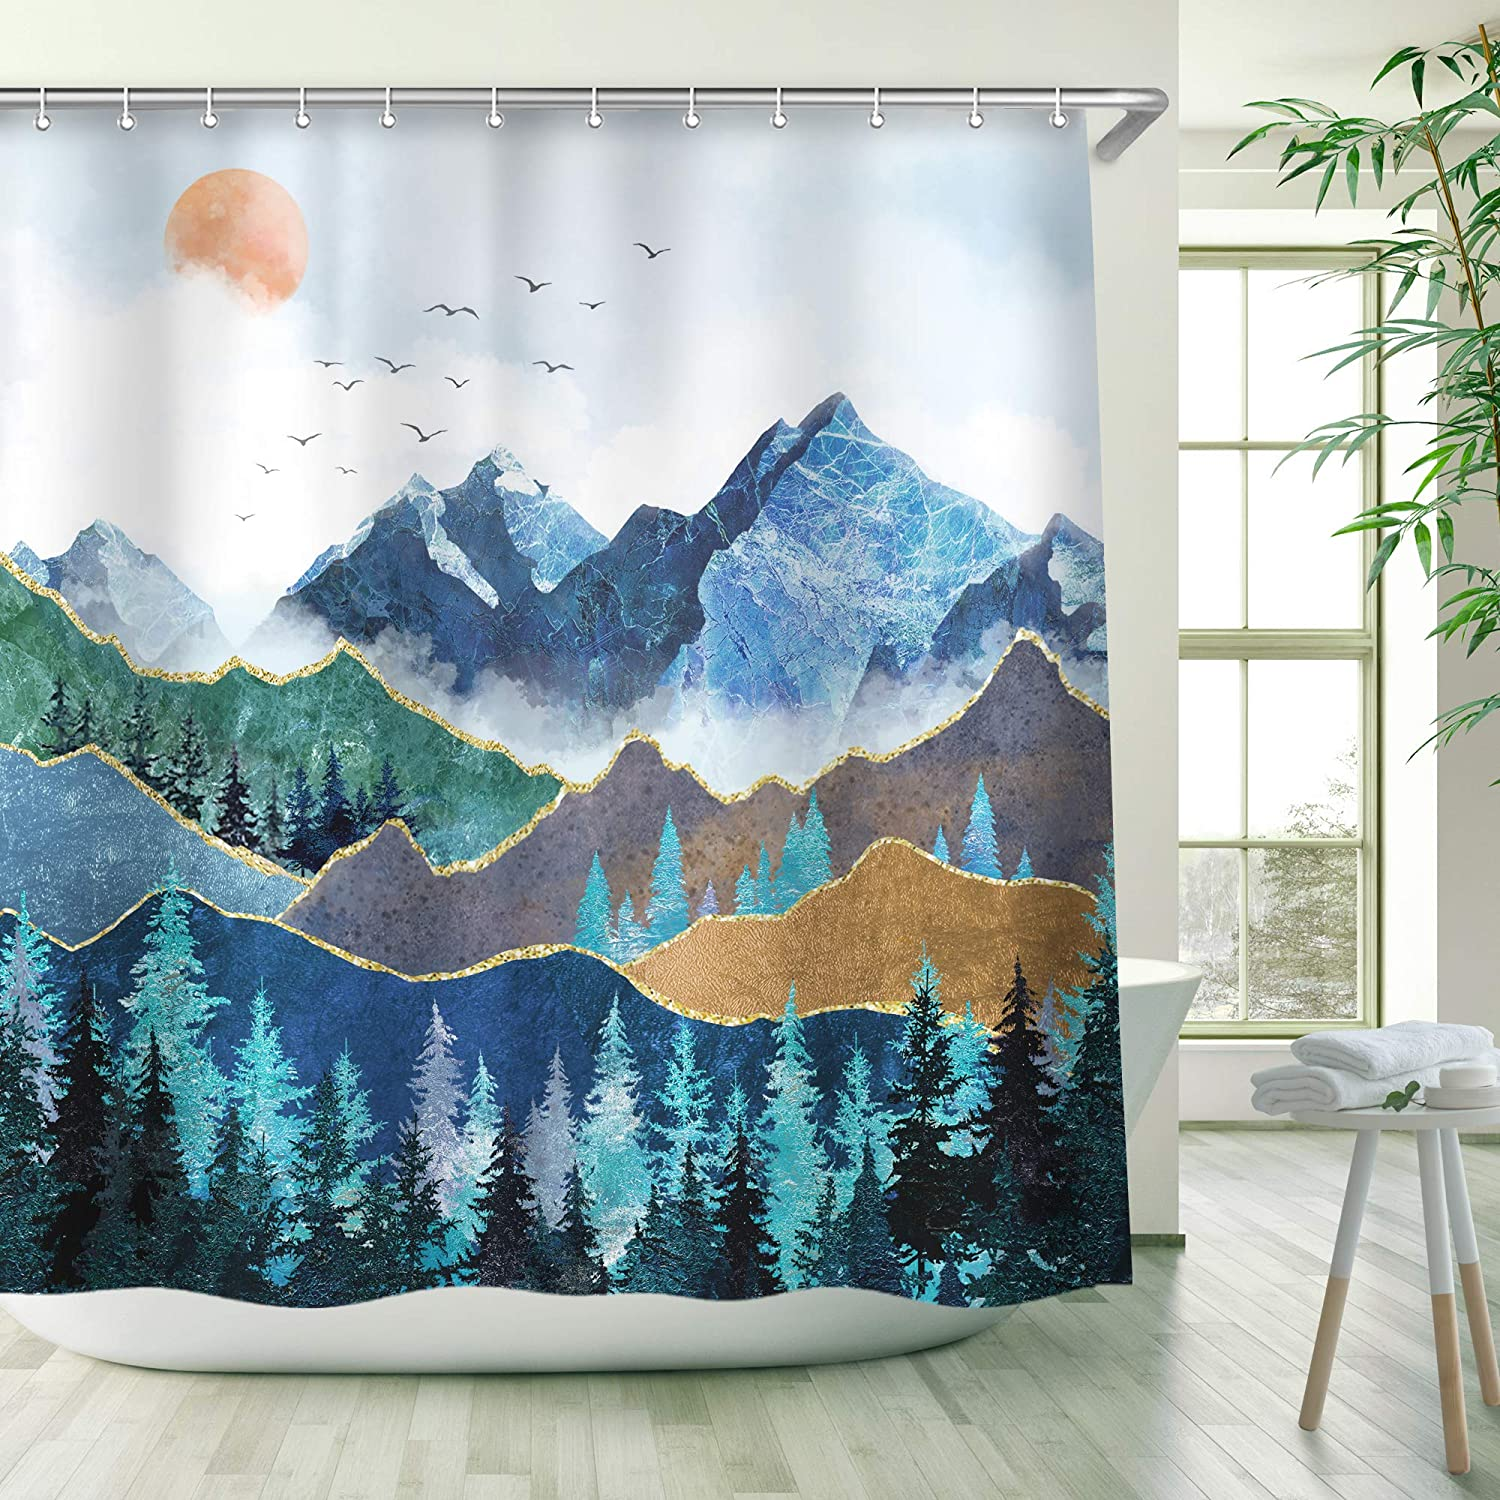 RosieLily Mountain Shower Curtain, Nature Shower Curtains Set with 12 Hooks, Waterproof Forest Shower Curtain, Decor Blue Japanese Mountain Forest Shower Curtain , 72x78 inch